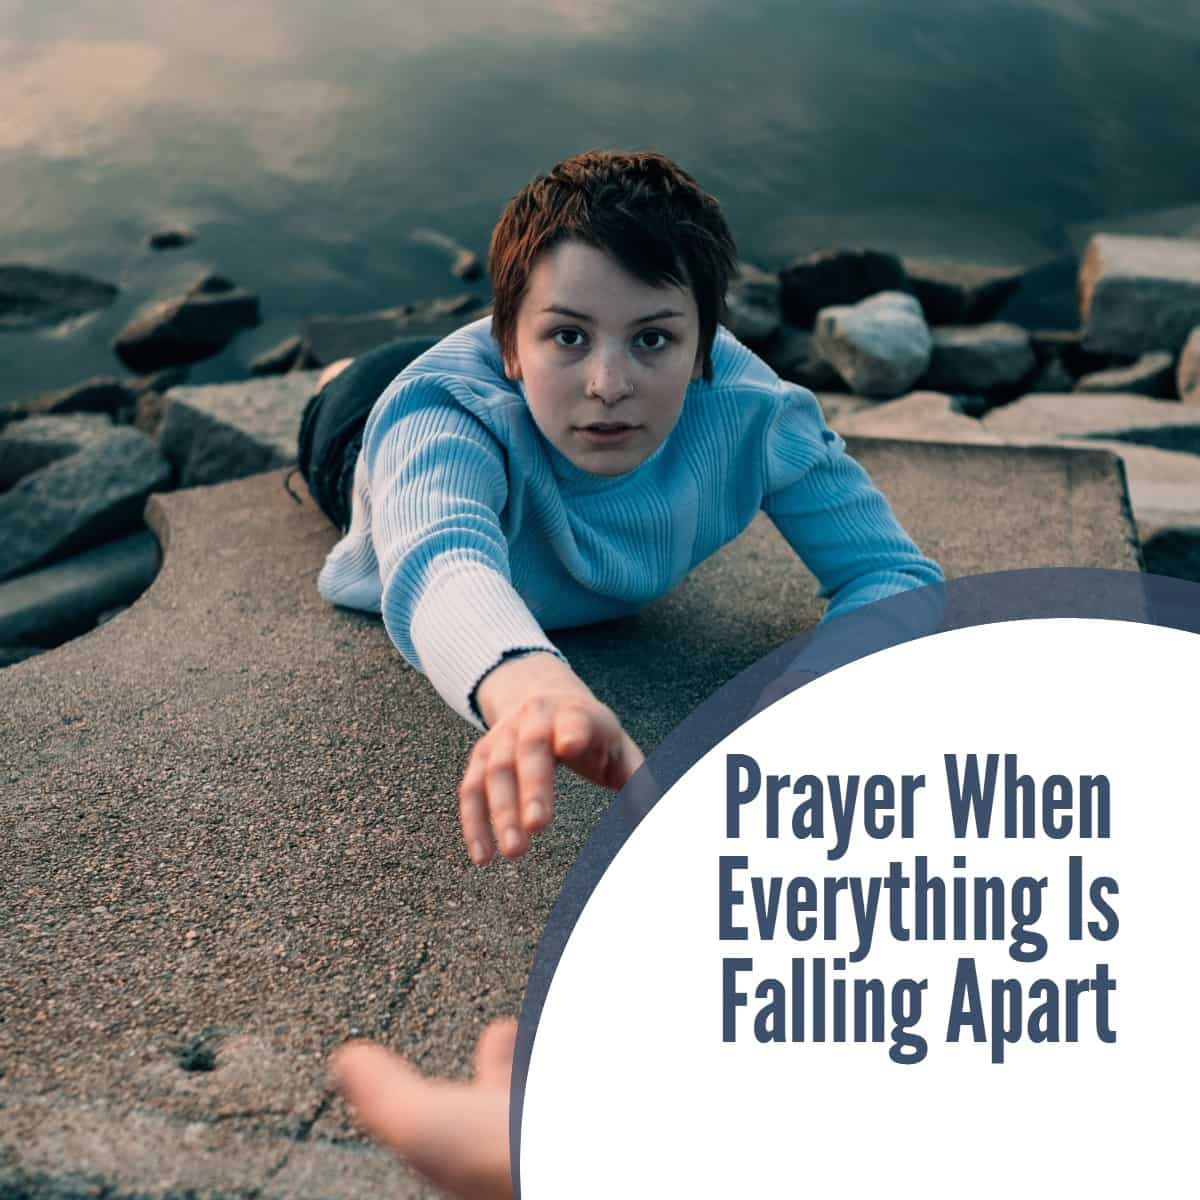 Prayer When Everything Is Falling Apart